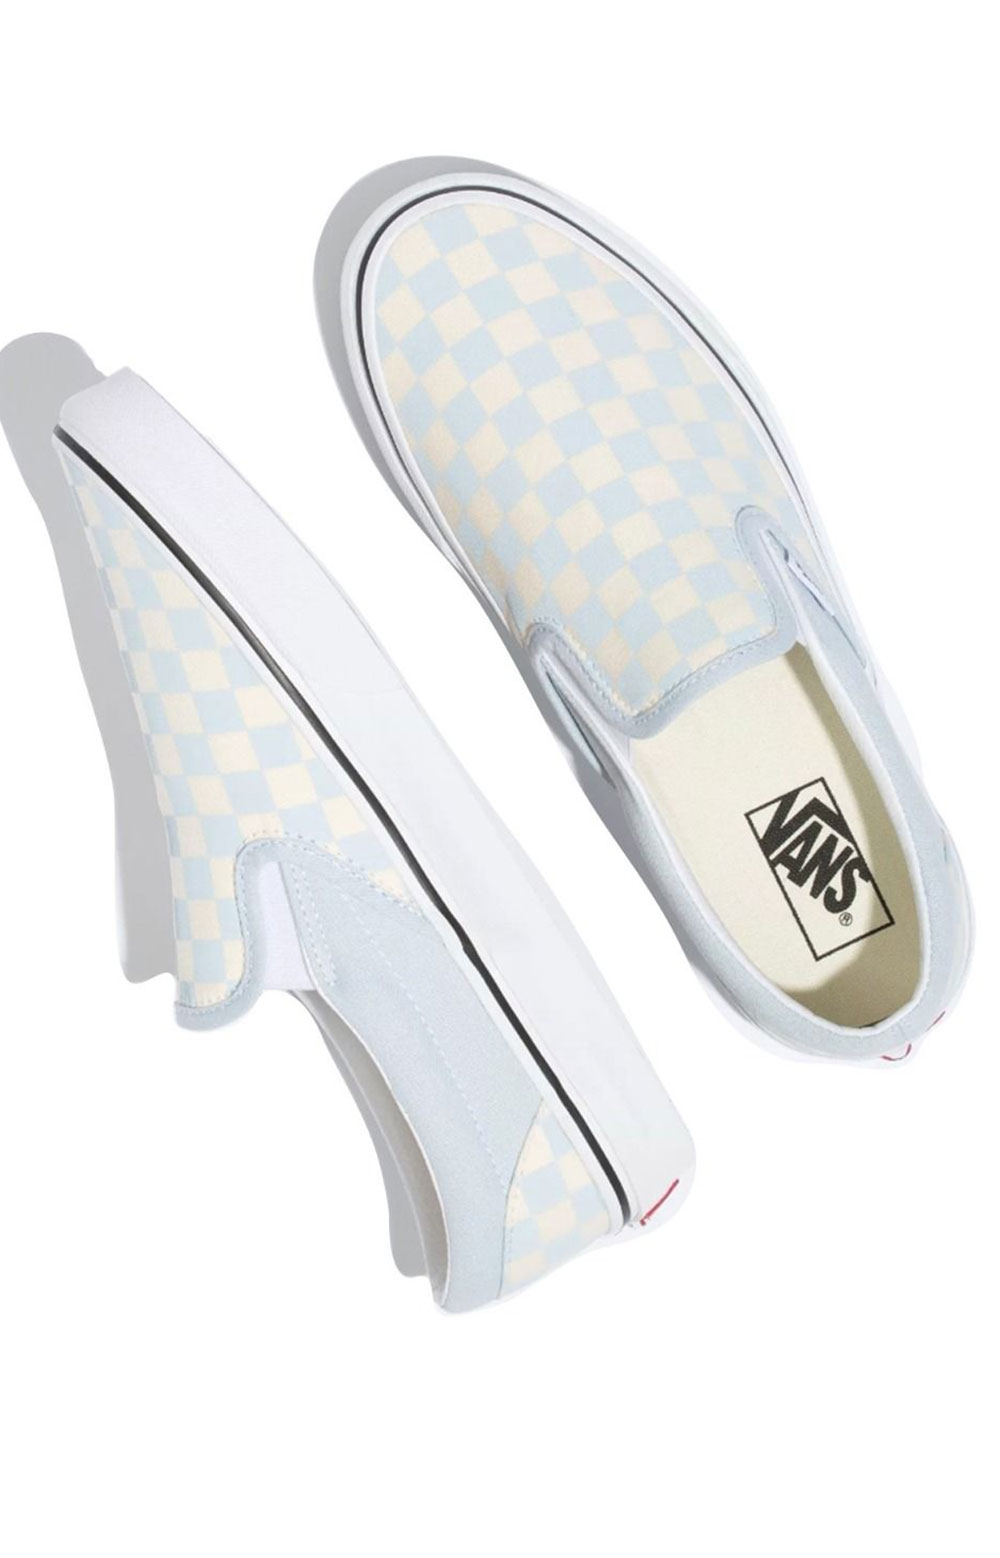 (3TB42Y) Checkerboard Classic Slip-On Shoes - Baby Blue  2